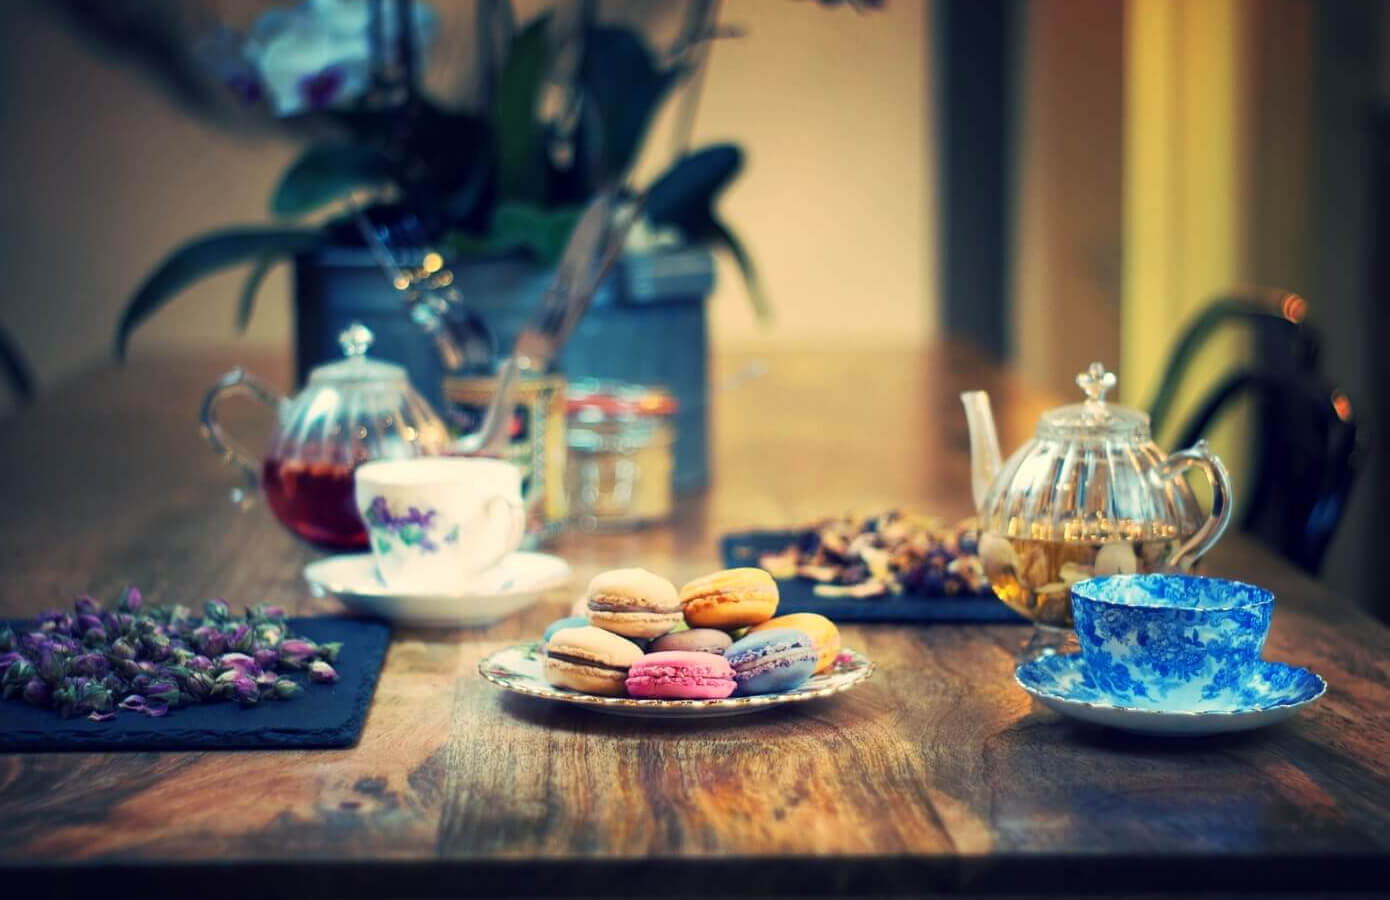 Table with tea and macaroons at 11 Coffee & Co, Ealing